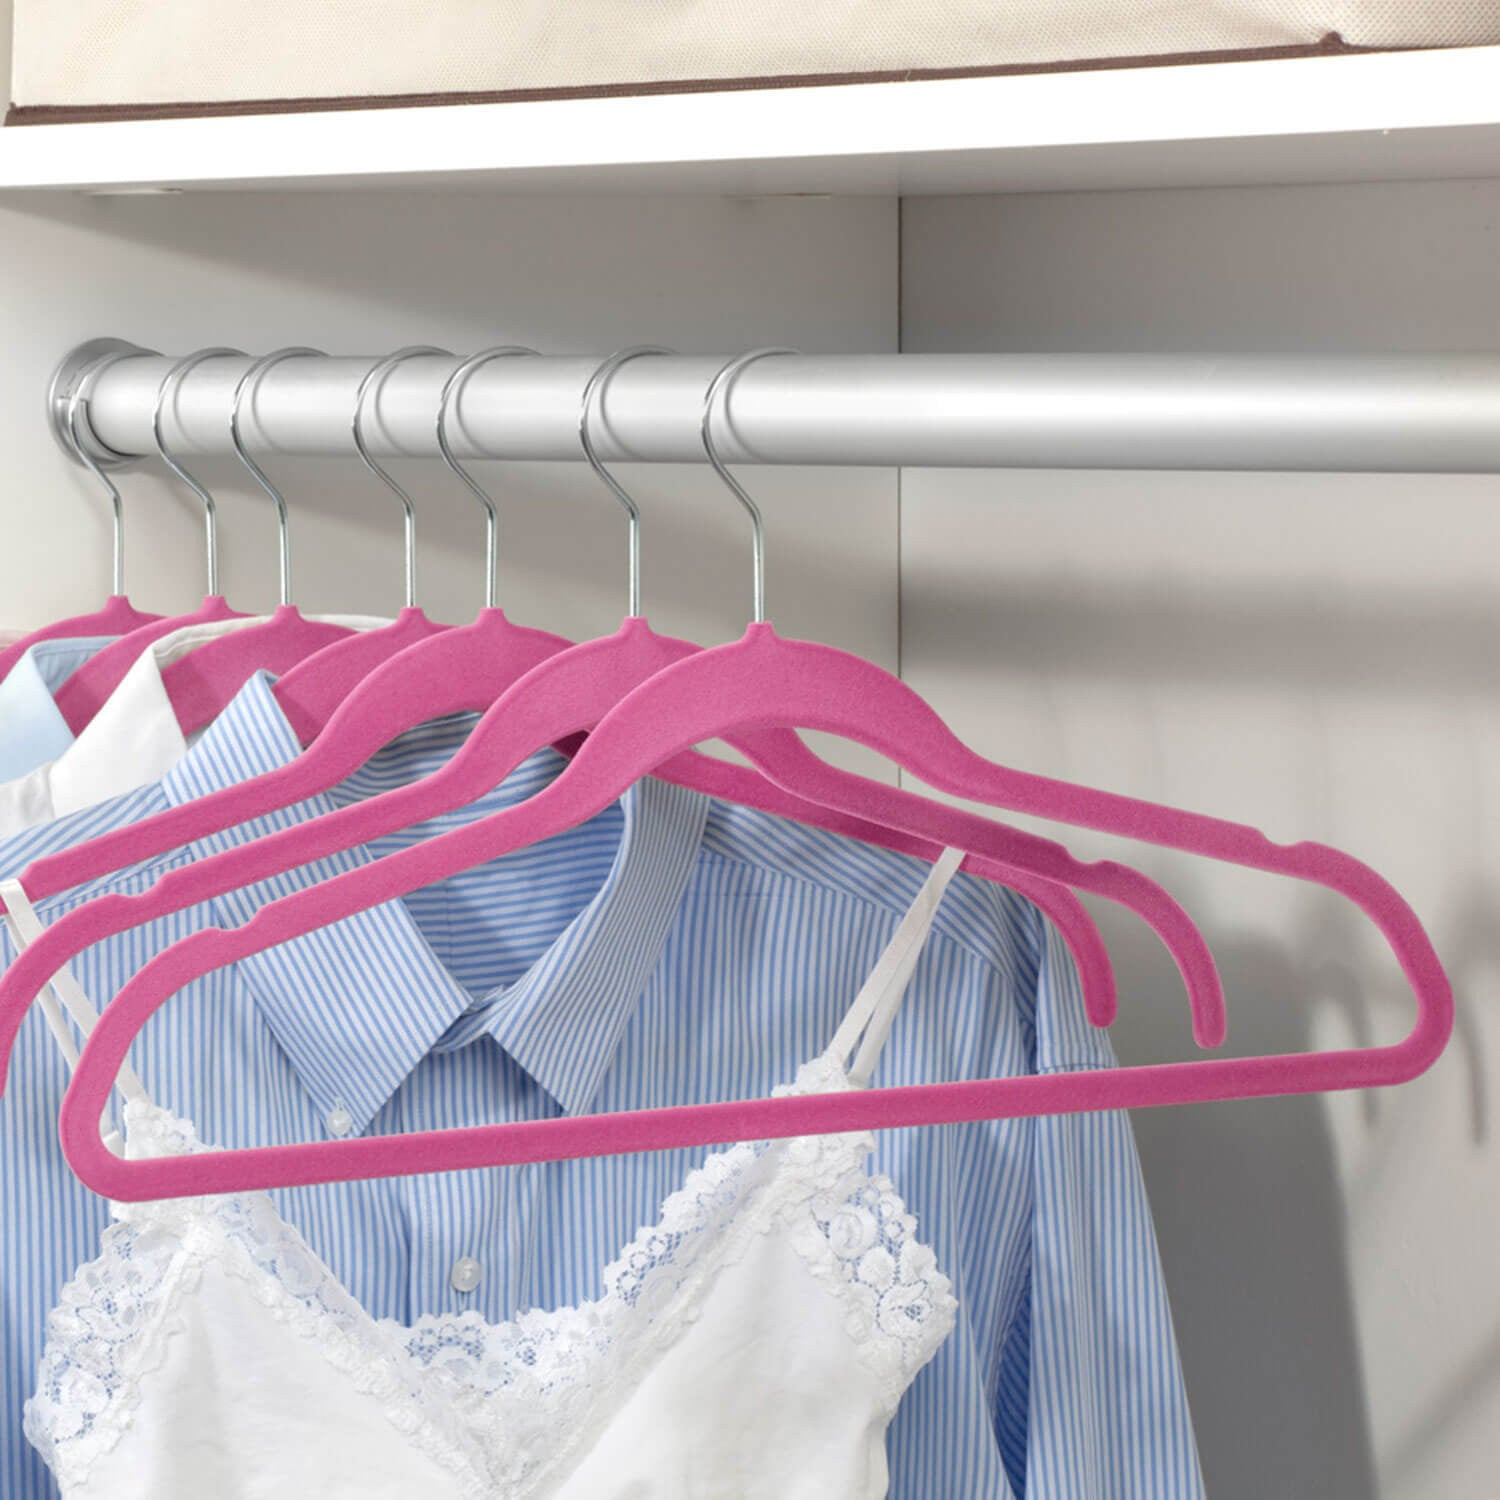 Non Slip - Slim Fit Basic Hangers Set of 6